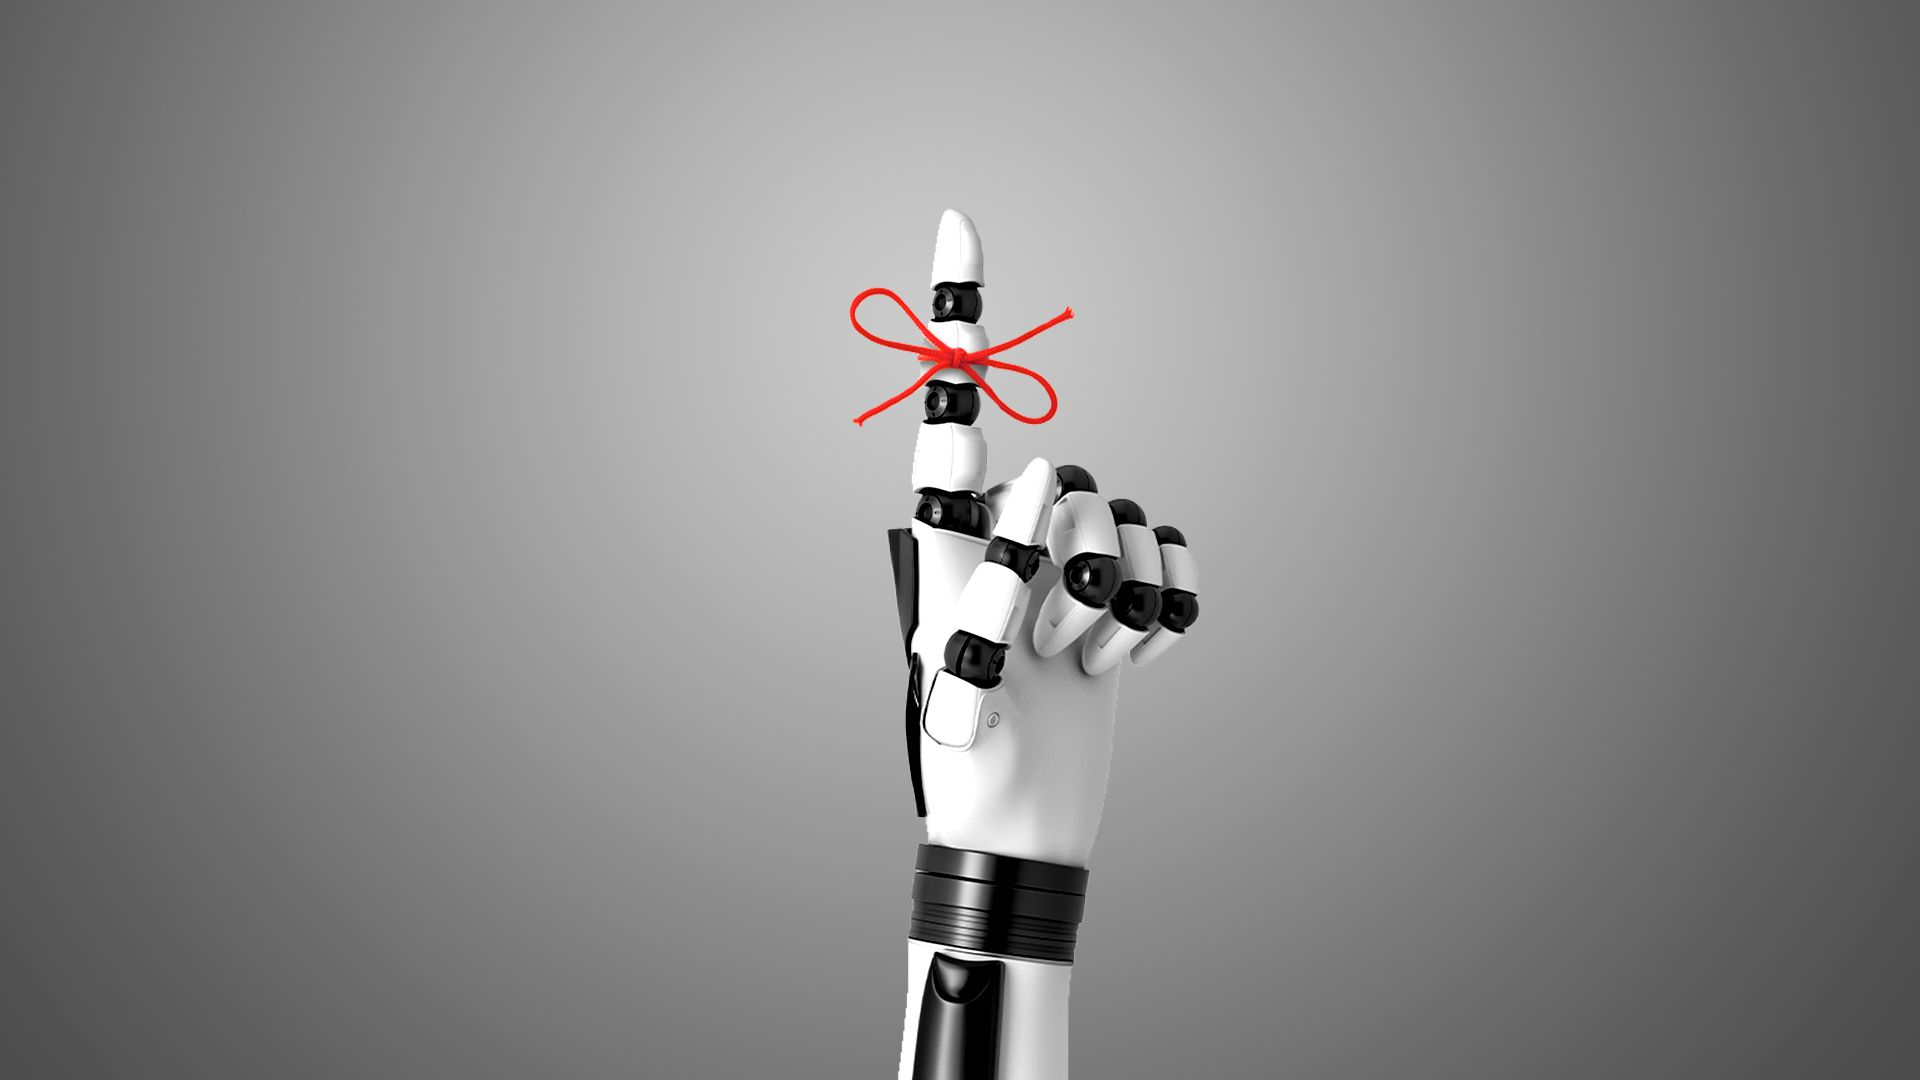 Illustration of a robot hand with a red string tied around one finger